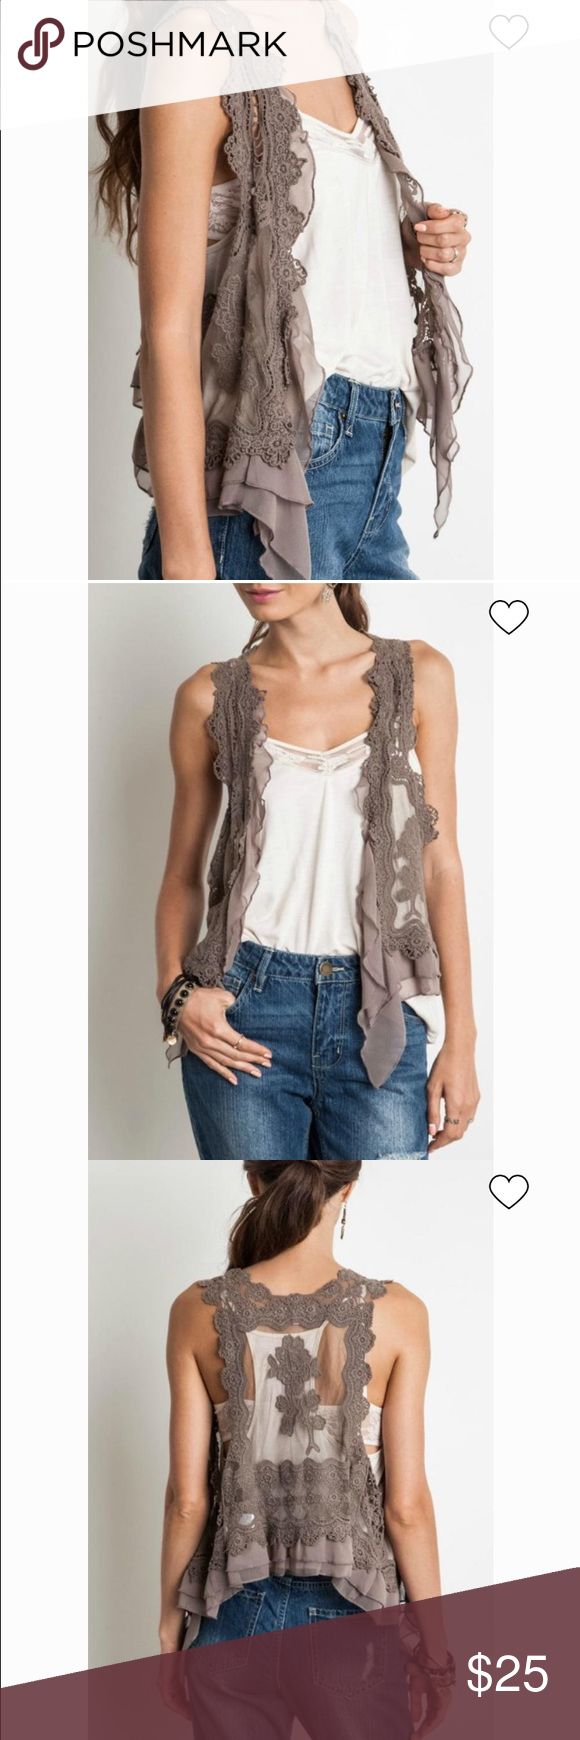 Mocha Crochet Lace Vest Umgee crochet lace vest. Lace and ruffle vest that hits below the waist. The back is sheer with lace. Brand new. Size small Umgee Other